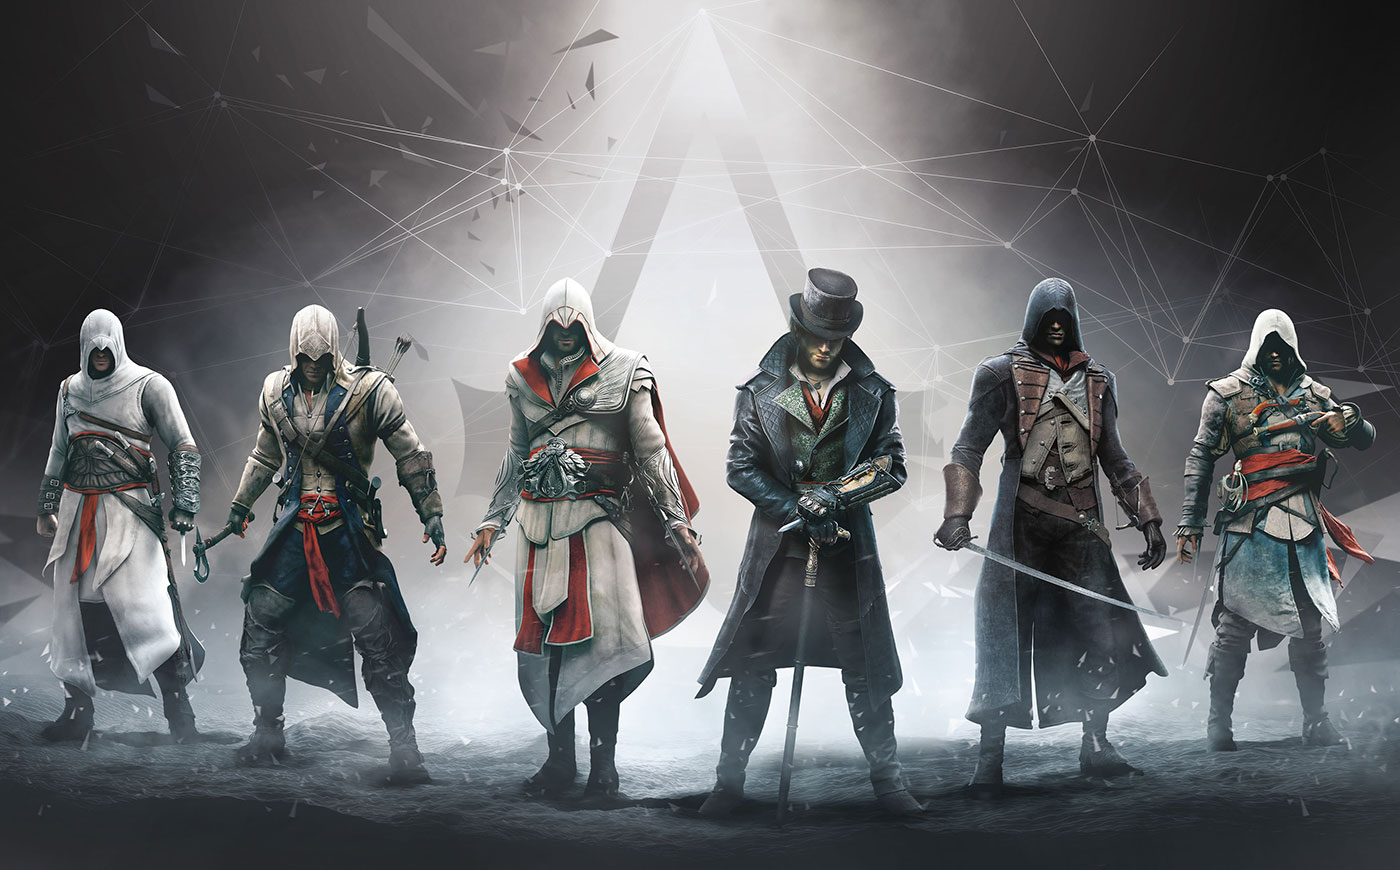 Assassin's Creed 2019: i rumor parlano di un'ambientazione in Grecia